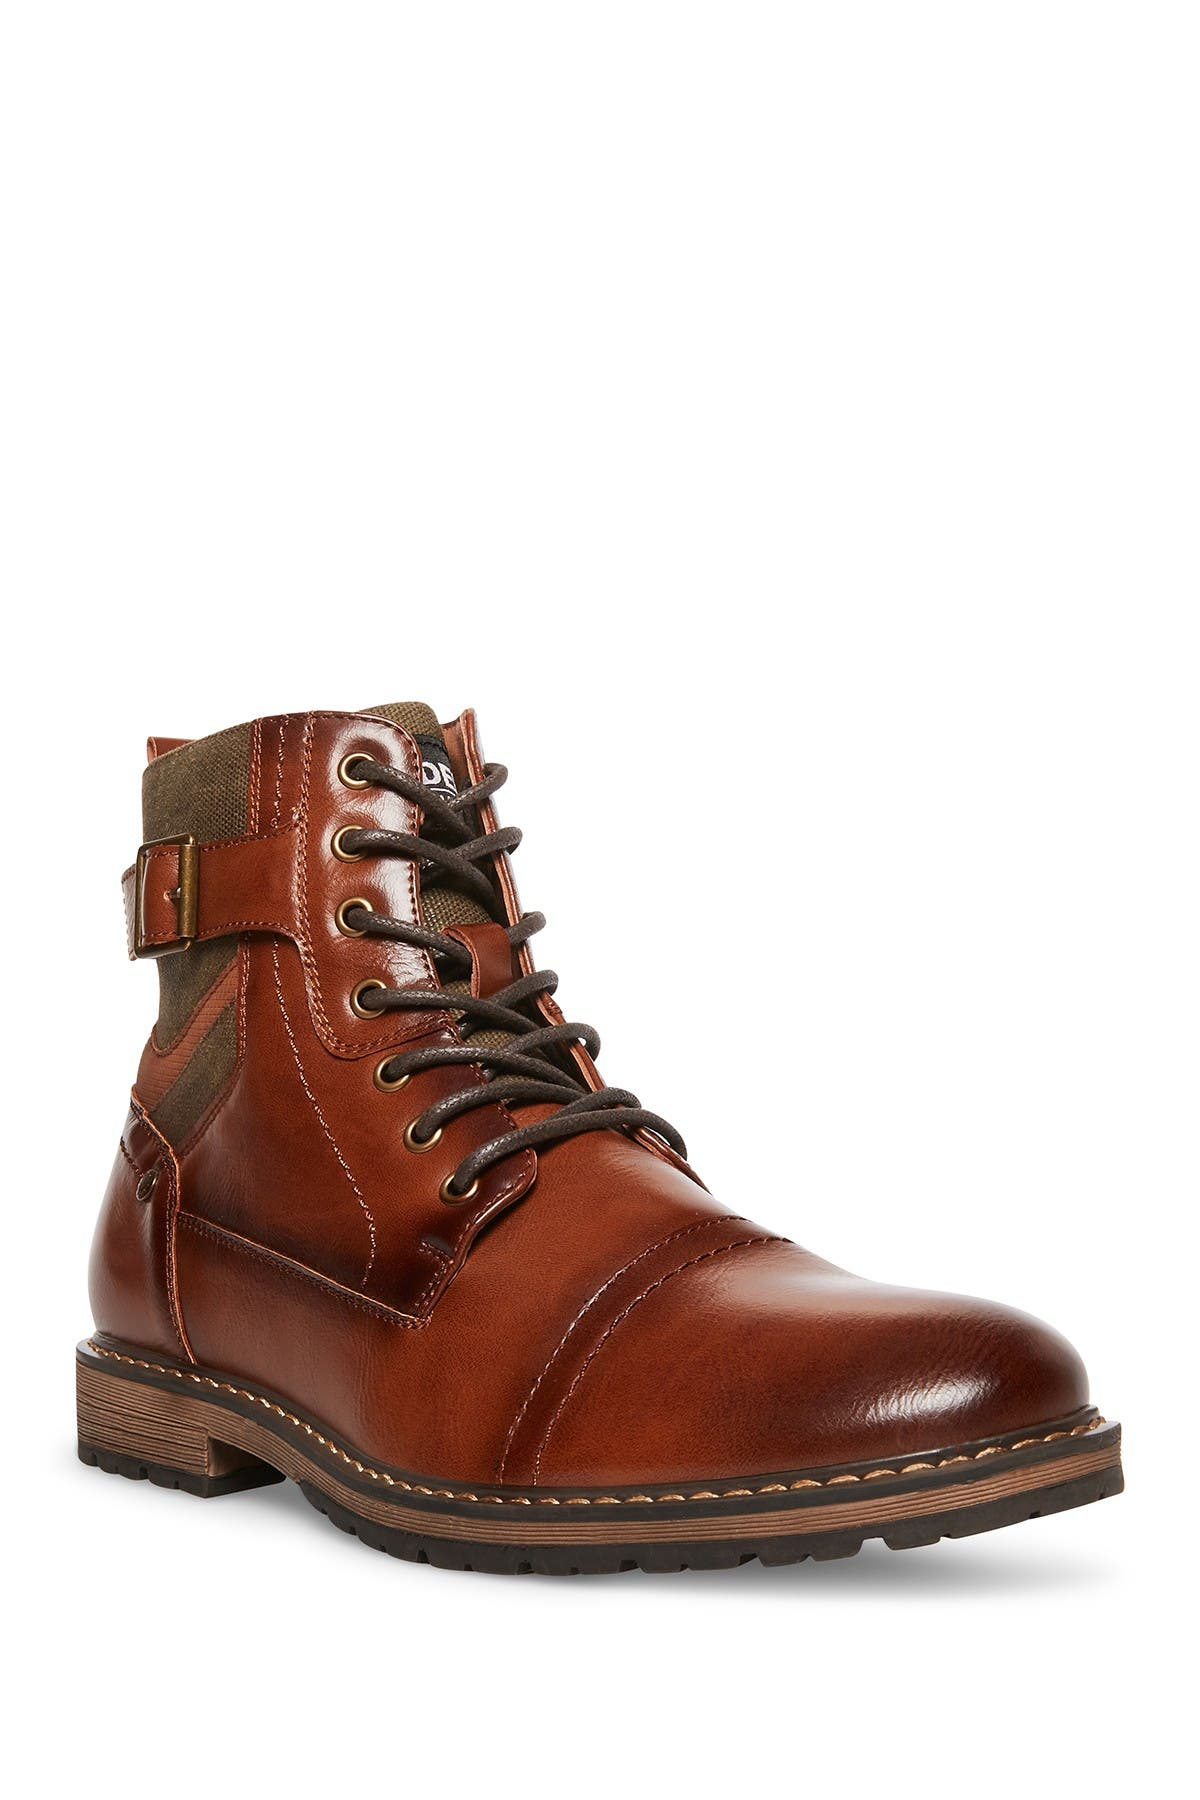 Image of Madden M-Tiskk Lace-Up Boot